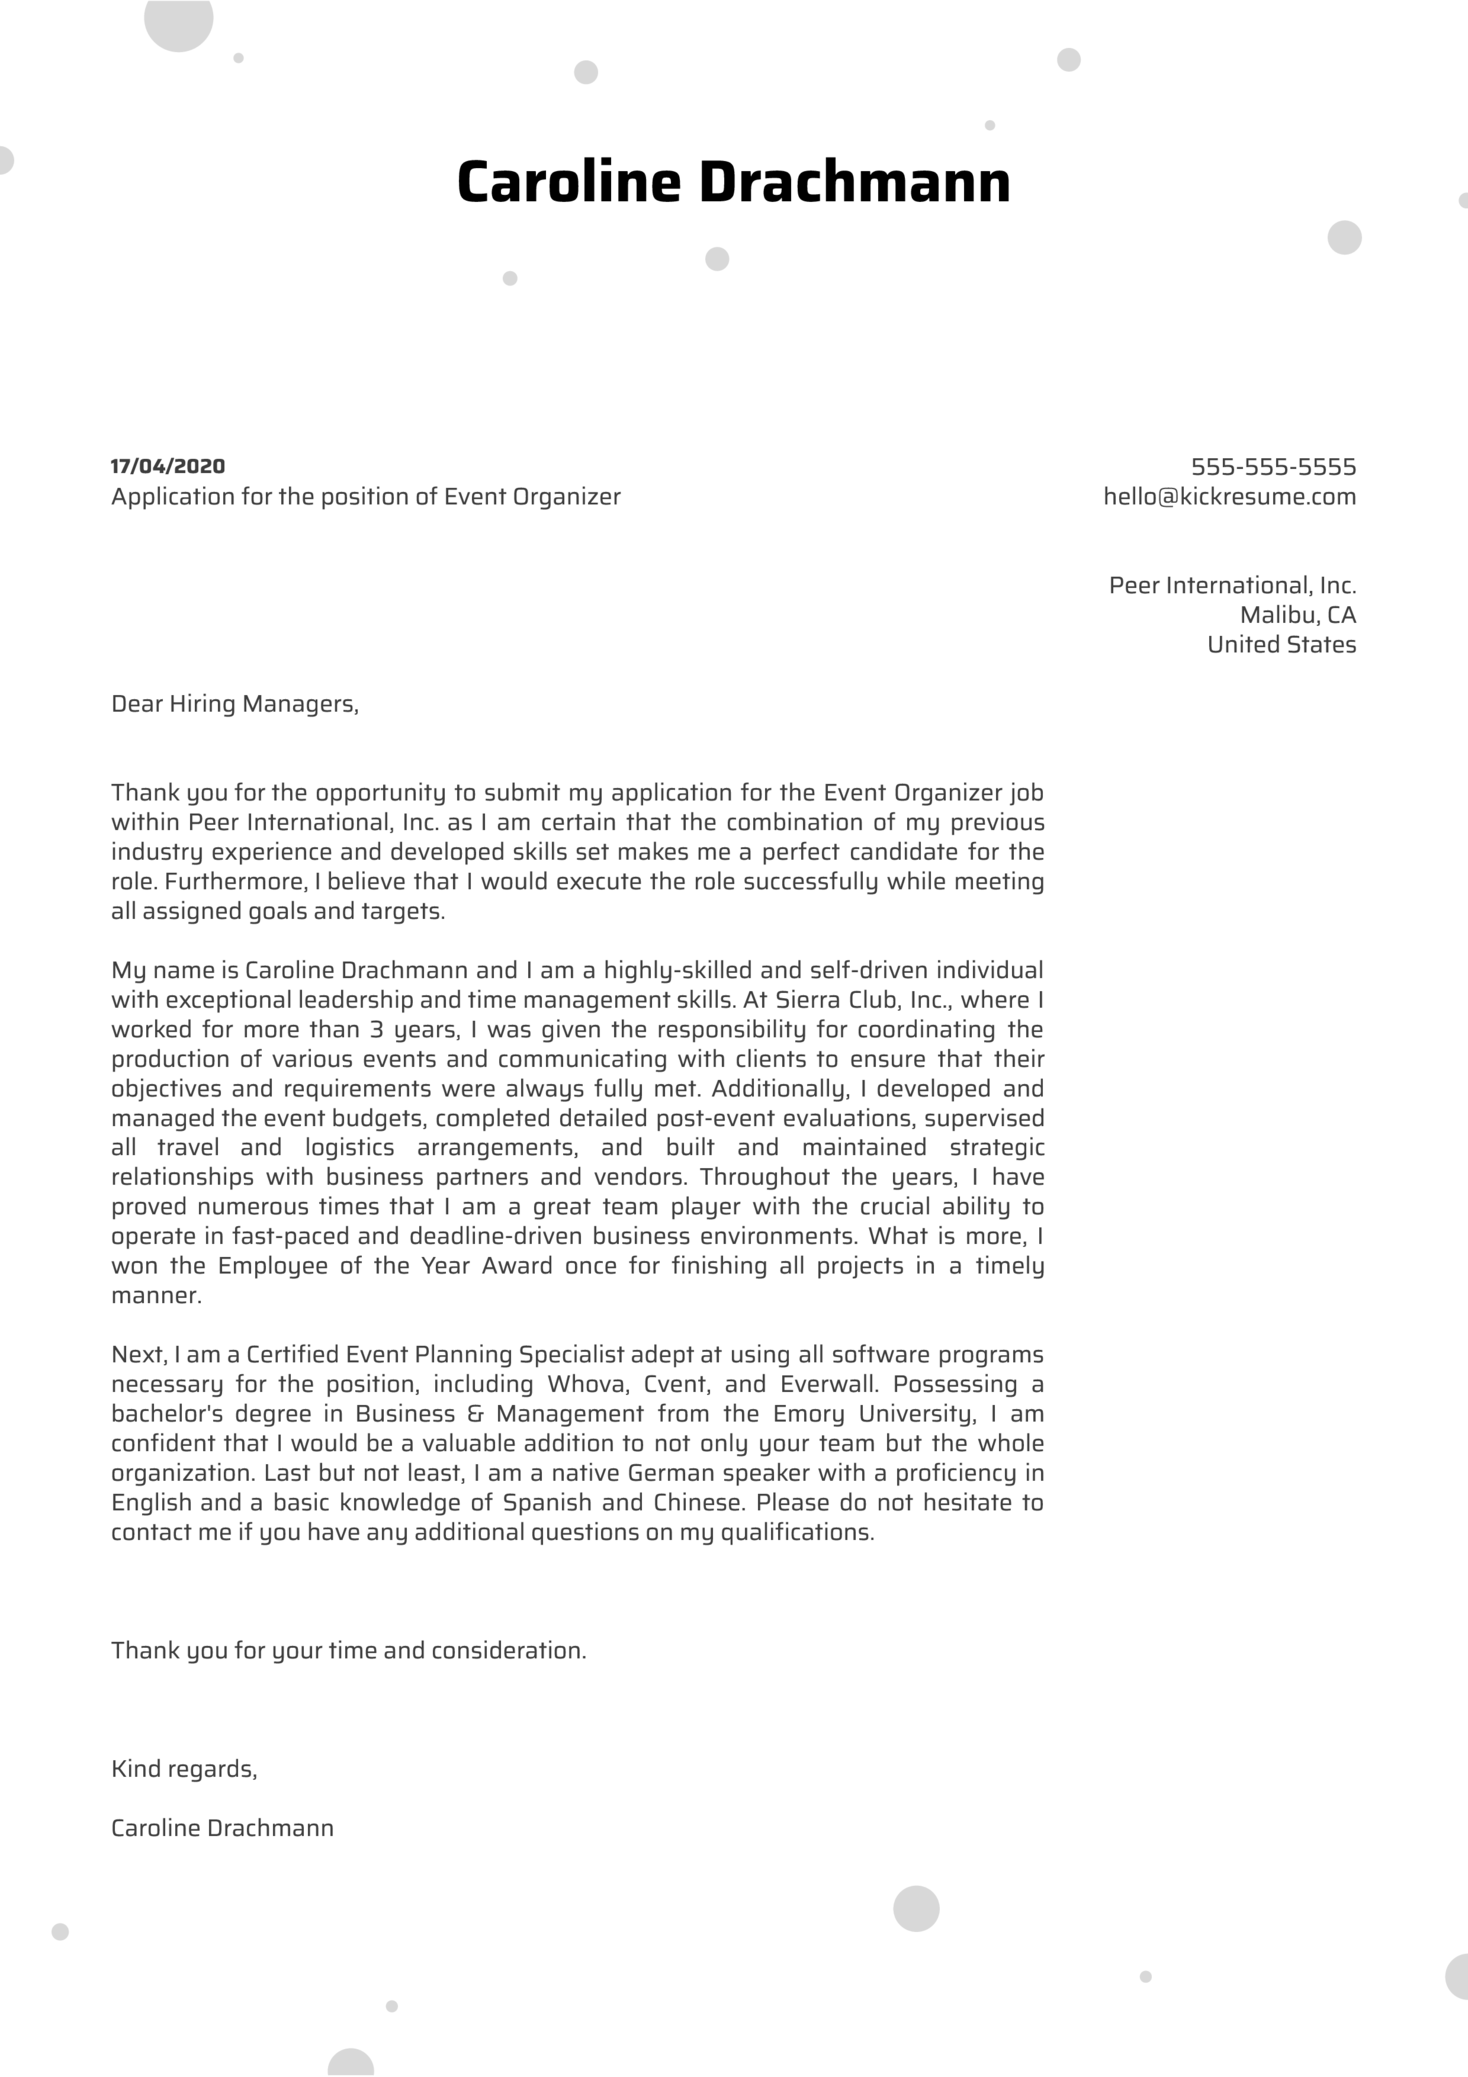 Event Organizer Cover Letter Sample